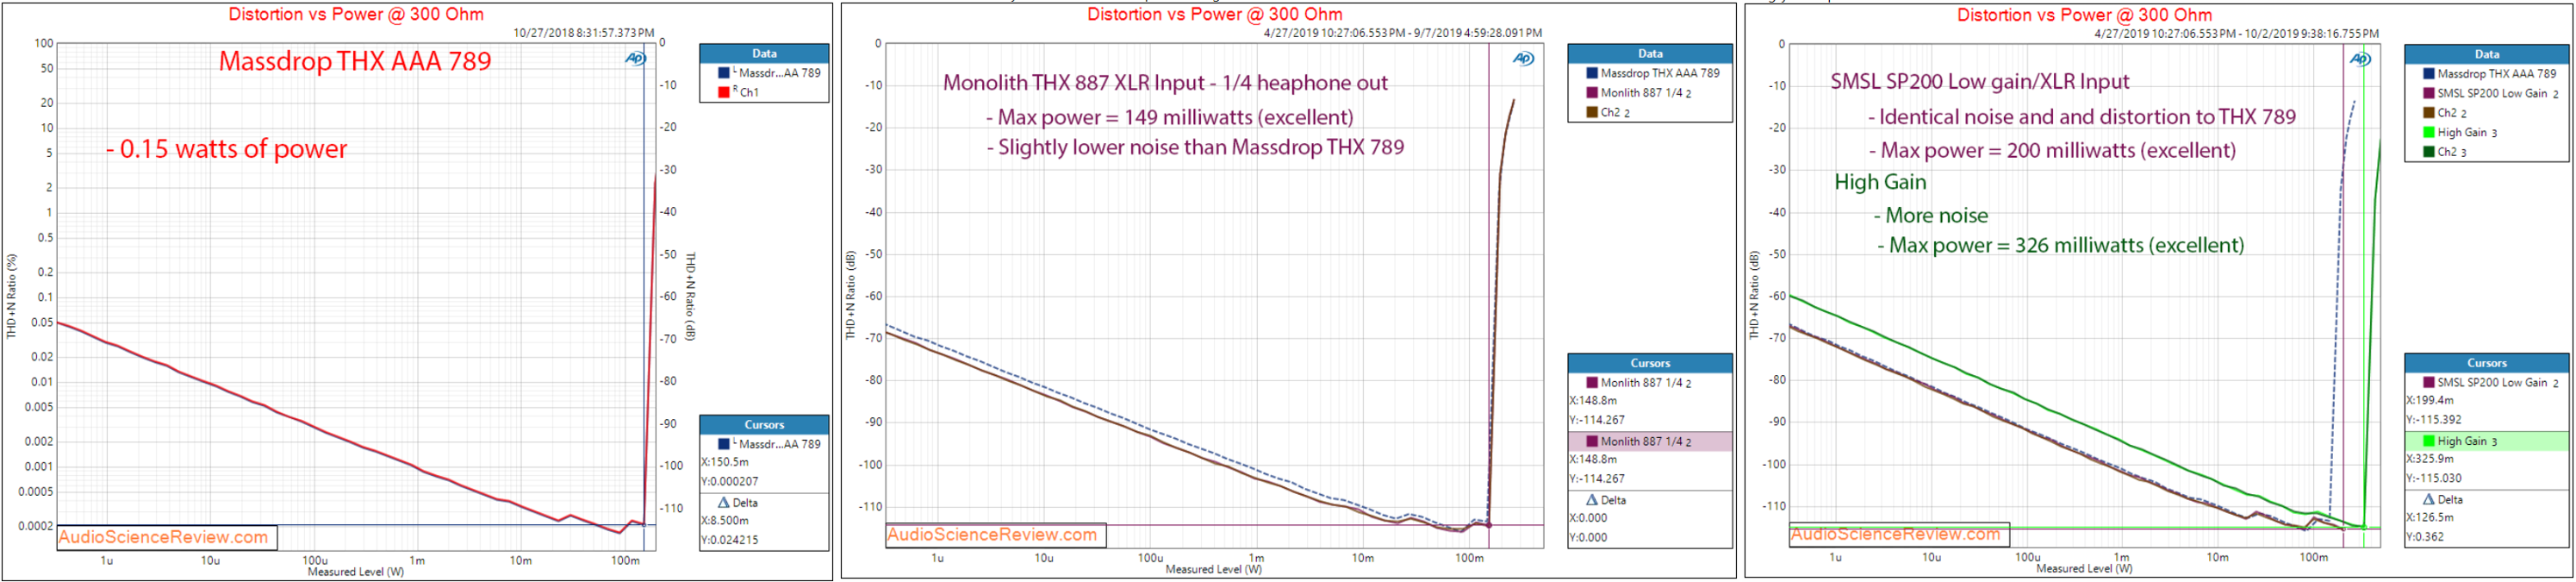 5.power_vs_distortion_300ohm.png